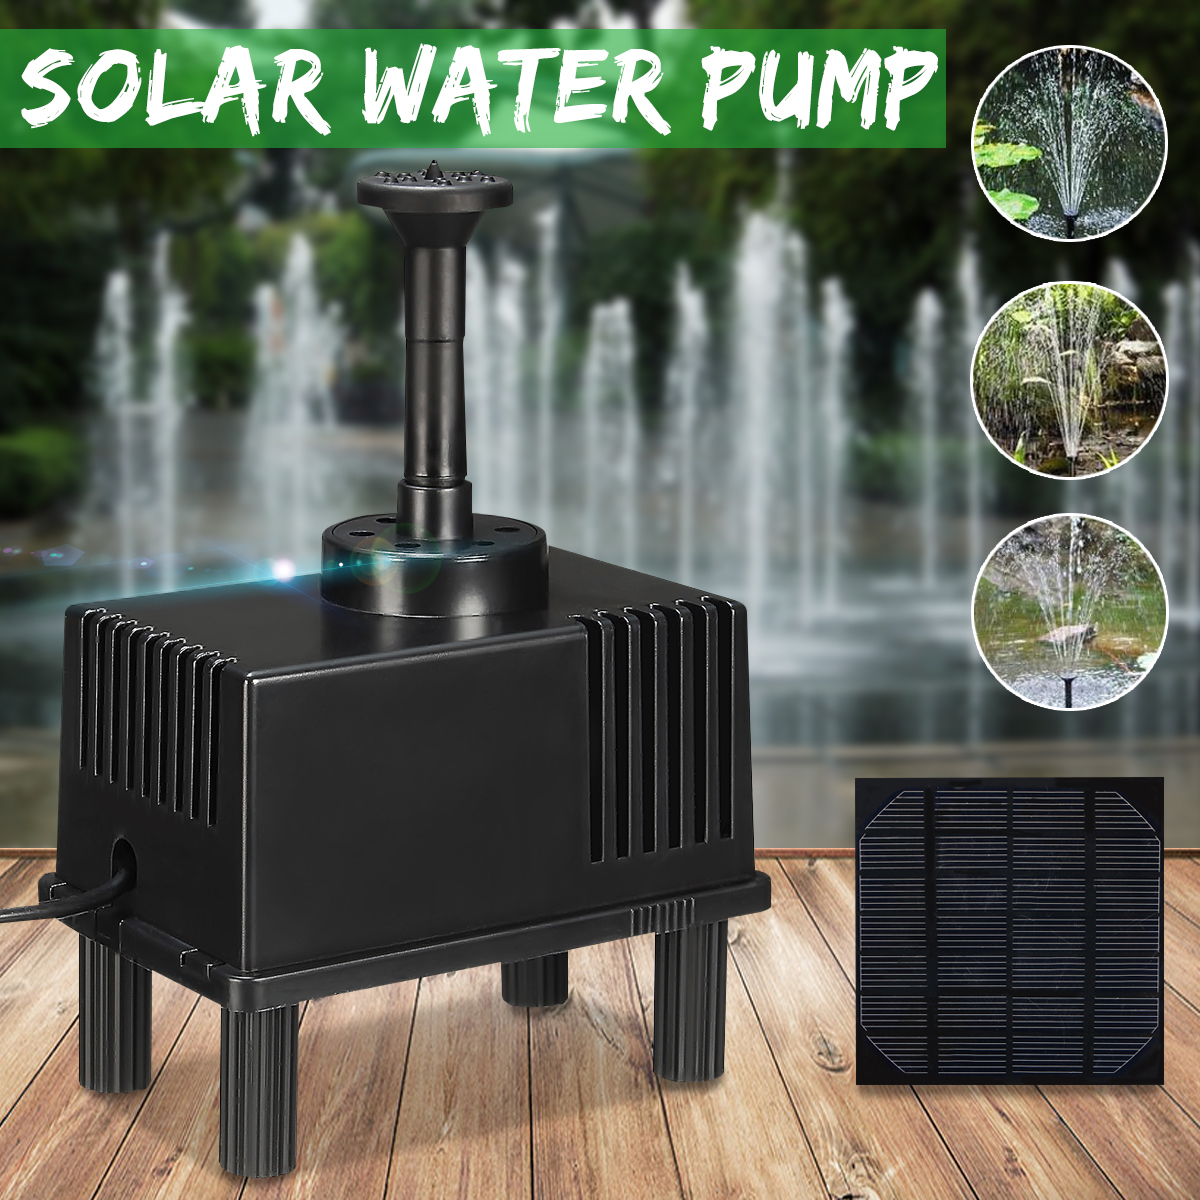 180L/h Mini Solar Powered Water Pump Solar Power Fountain Water Pump Panel Kit Pool Garden Landscape Pond Submersible Watering solar powered mini water pump fountain pool garden watering black page 6